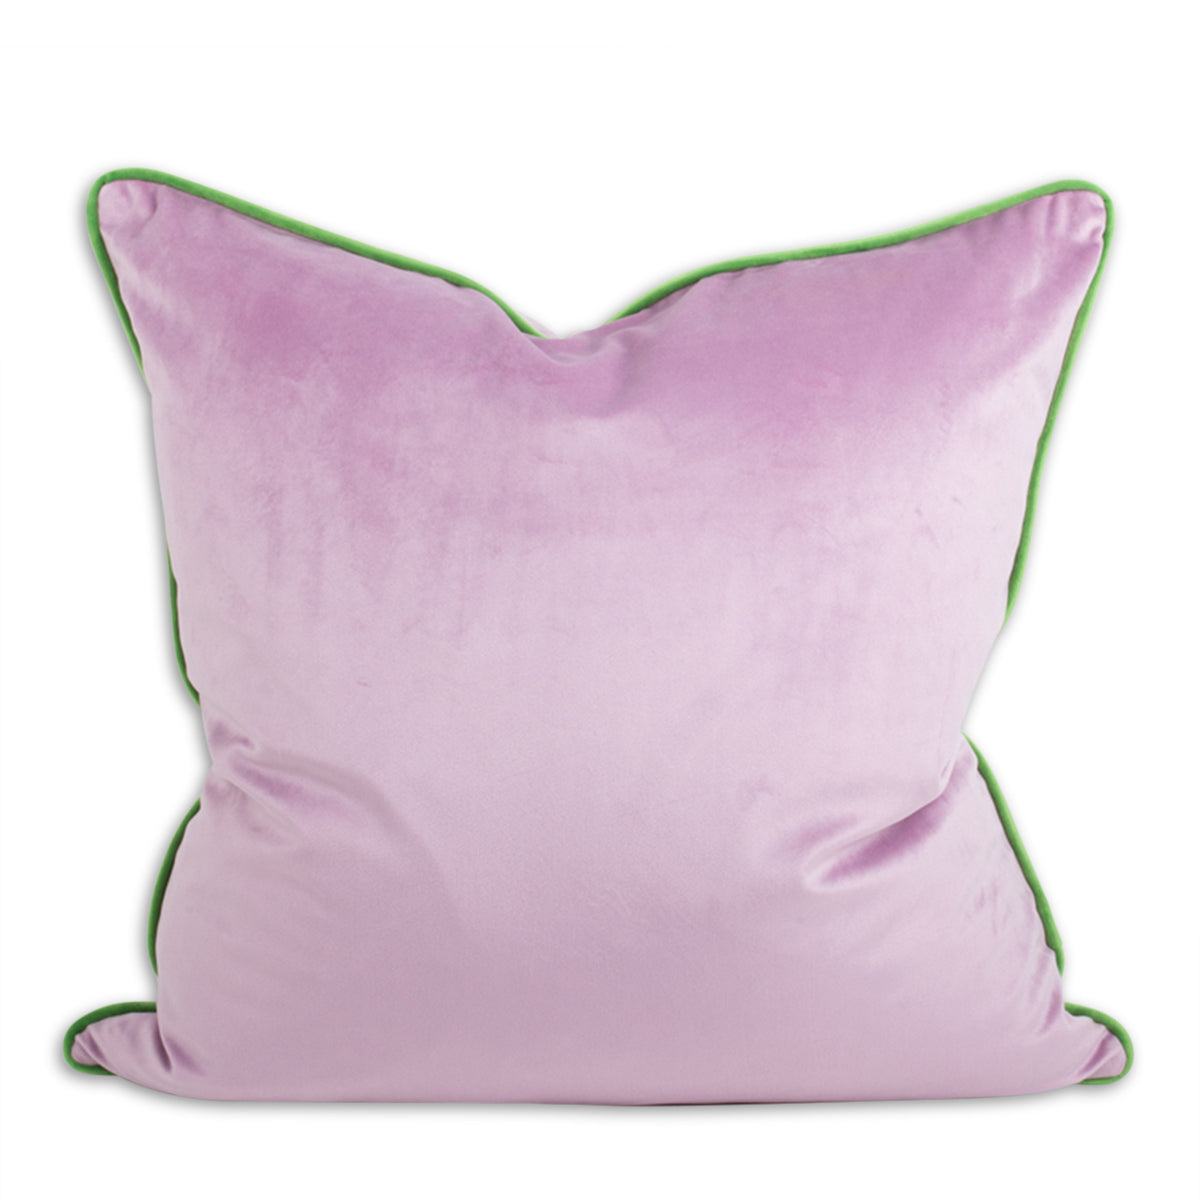 Yves Velvet Pillow - Lilac + Grass